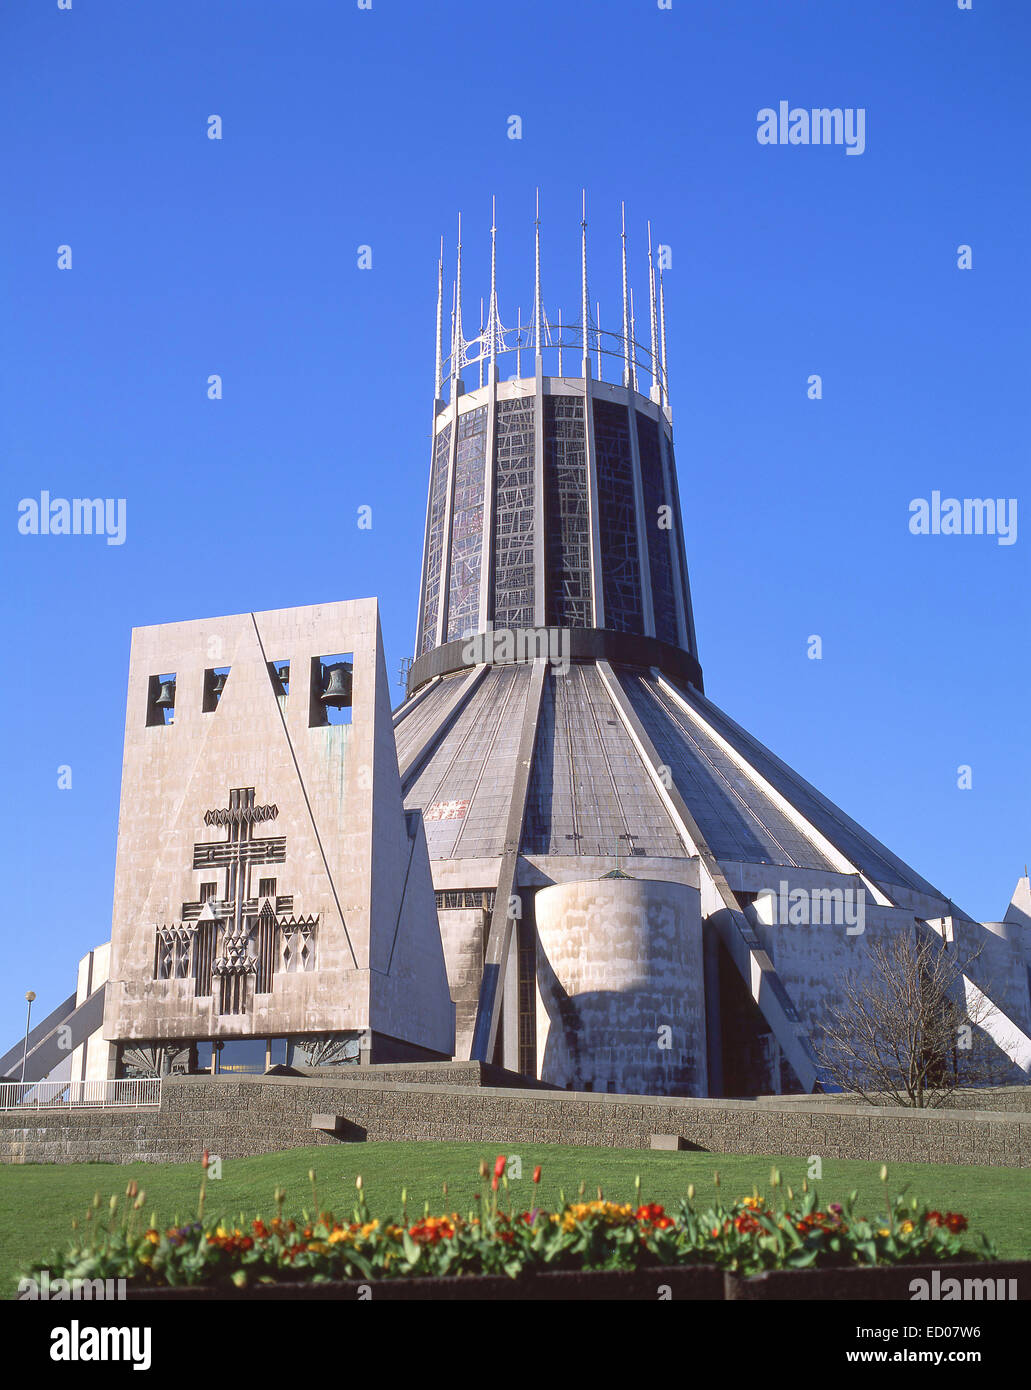 Liverpool Metropolitan Cathedral, Liverpool, Merseyside, England, United Kingdom - Stock Image